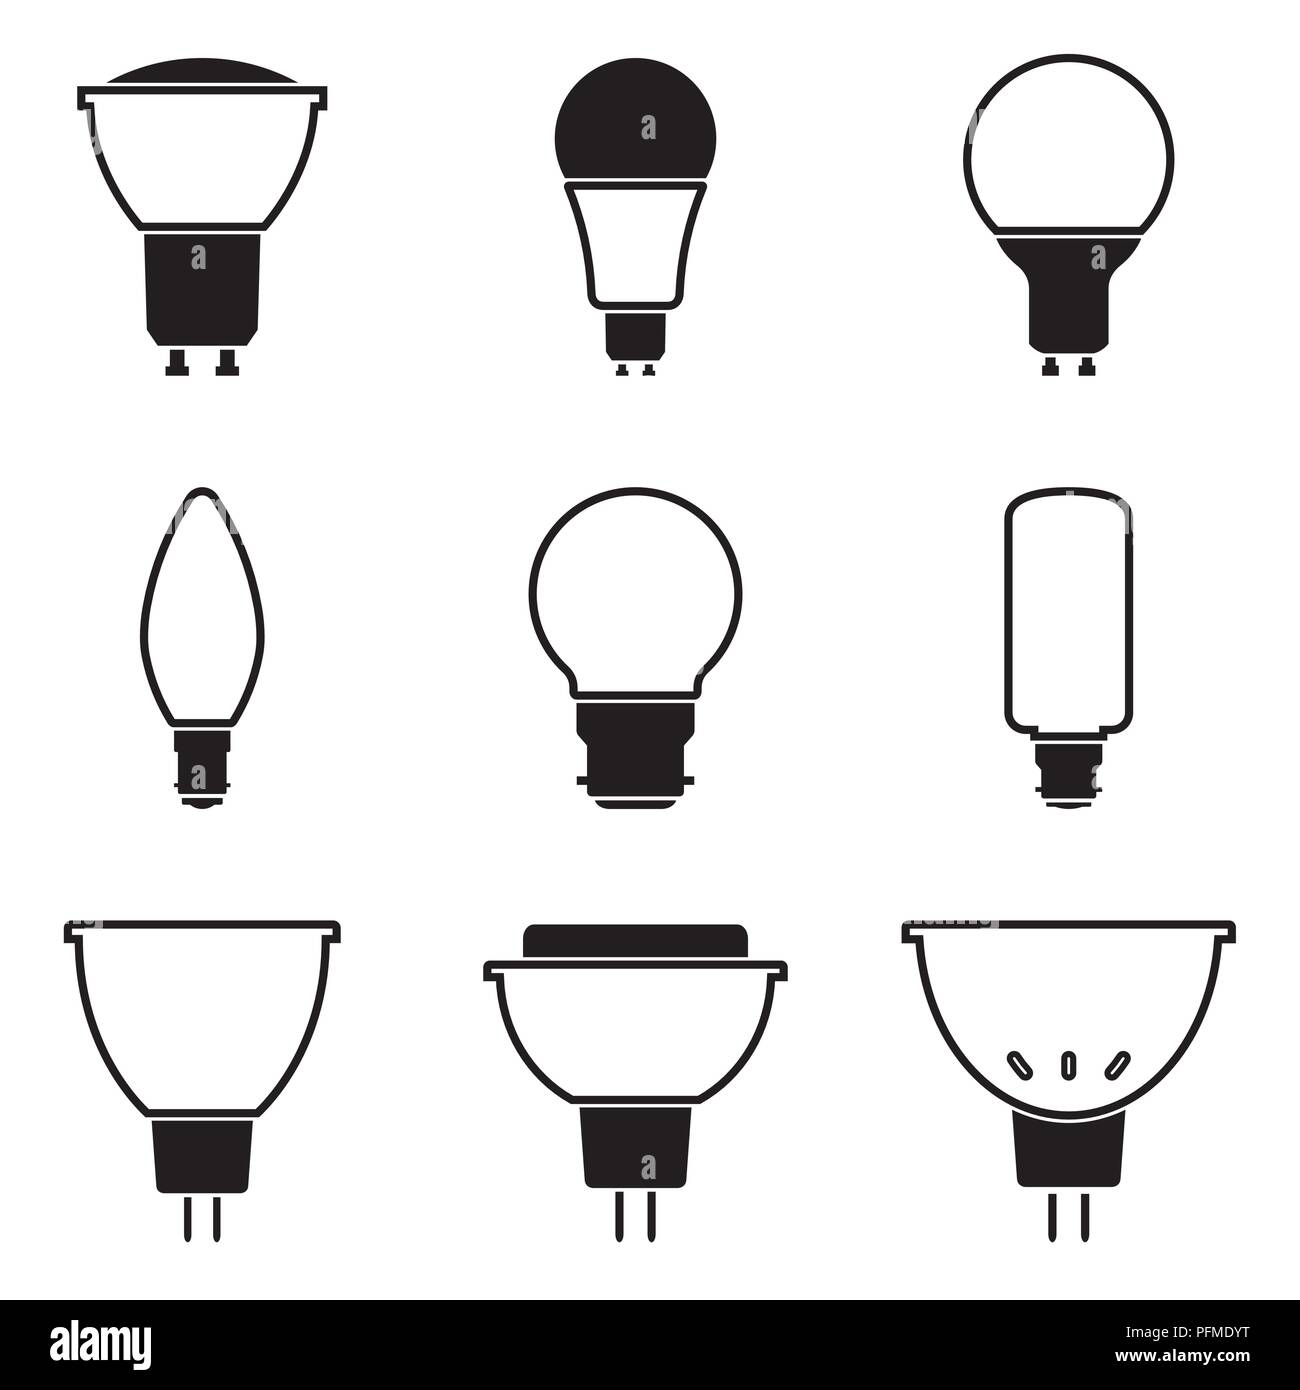 Halogen Light Bulb Different Types Of Holder Flat Vector Stock Vector Image Art Alamy